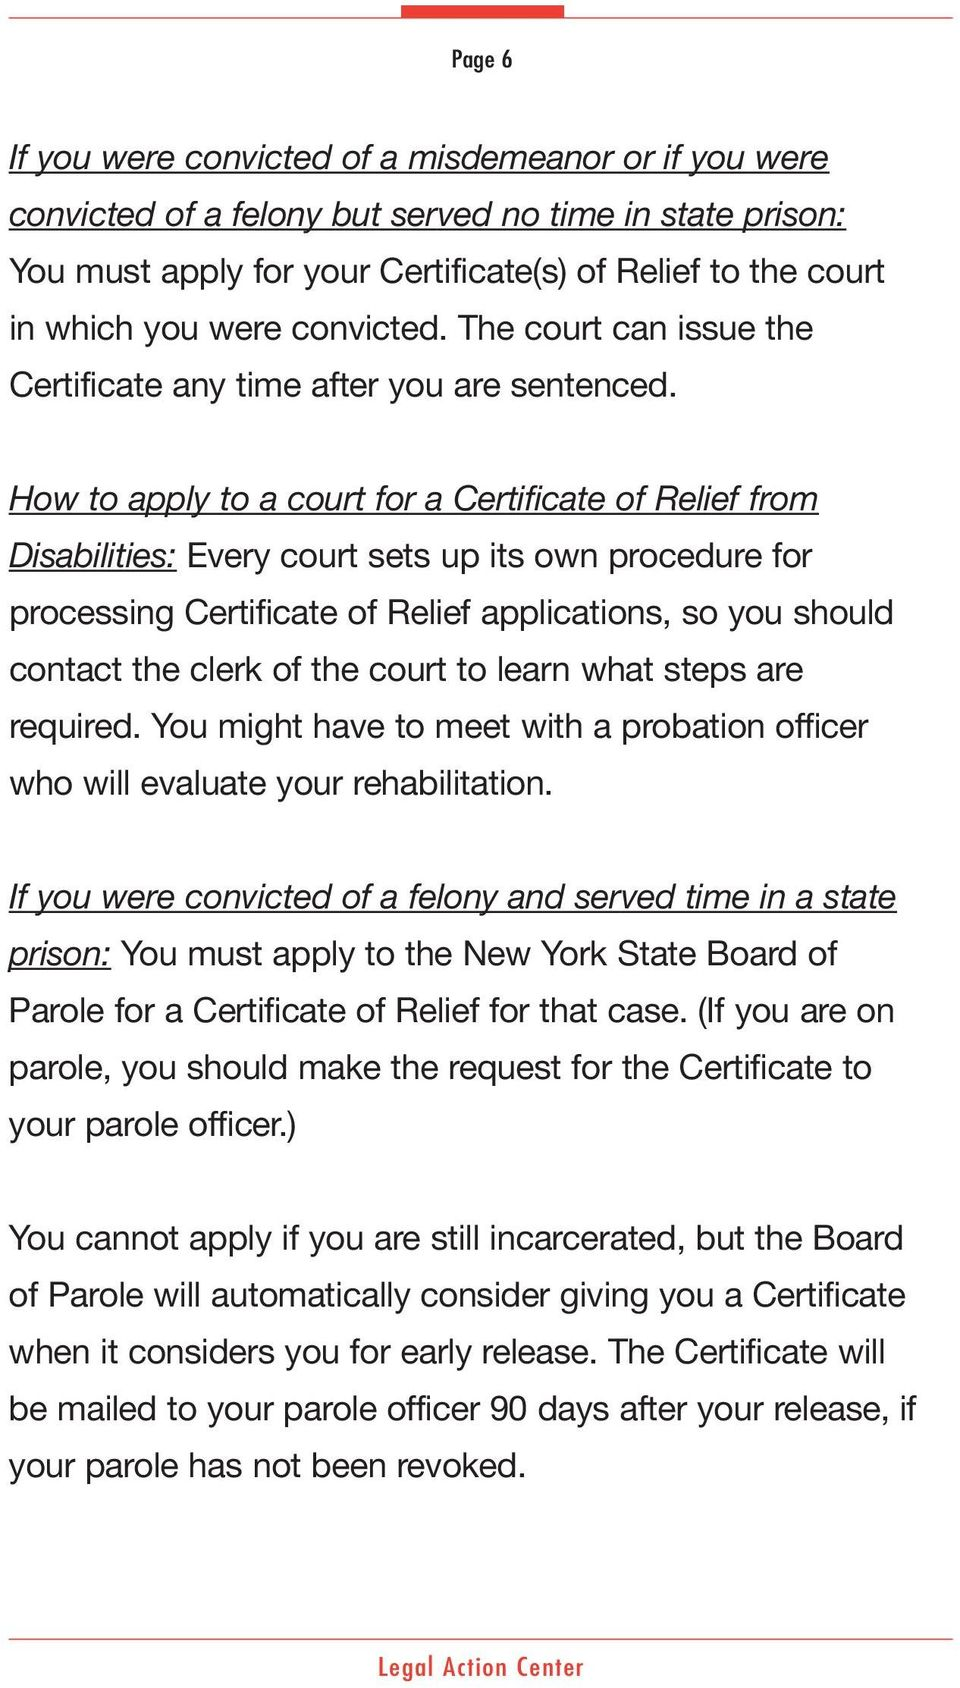 How to apply to a court for a Certificate of Relief from Disabilities: Every court sets up its own procedure for processing Certificate of Relief applications, so you should contact the clerk of the